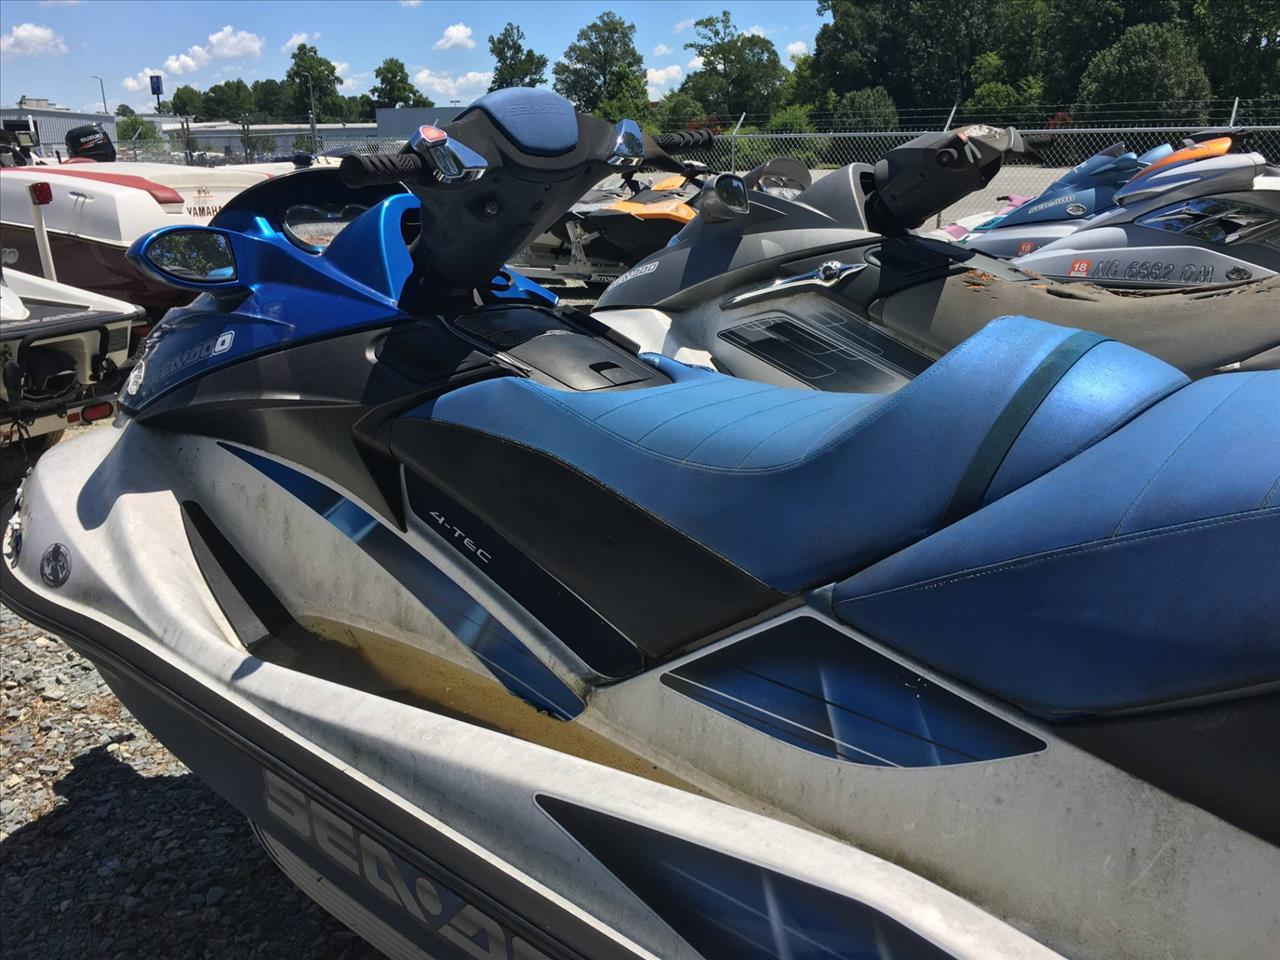 2007 Sea-Doo GTX 155 for sale at Vehicle Network, LLC - Performance East, INC. in Goldsboro NC